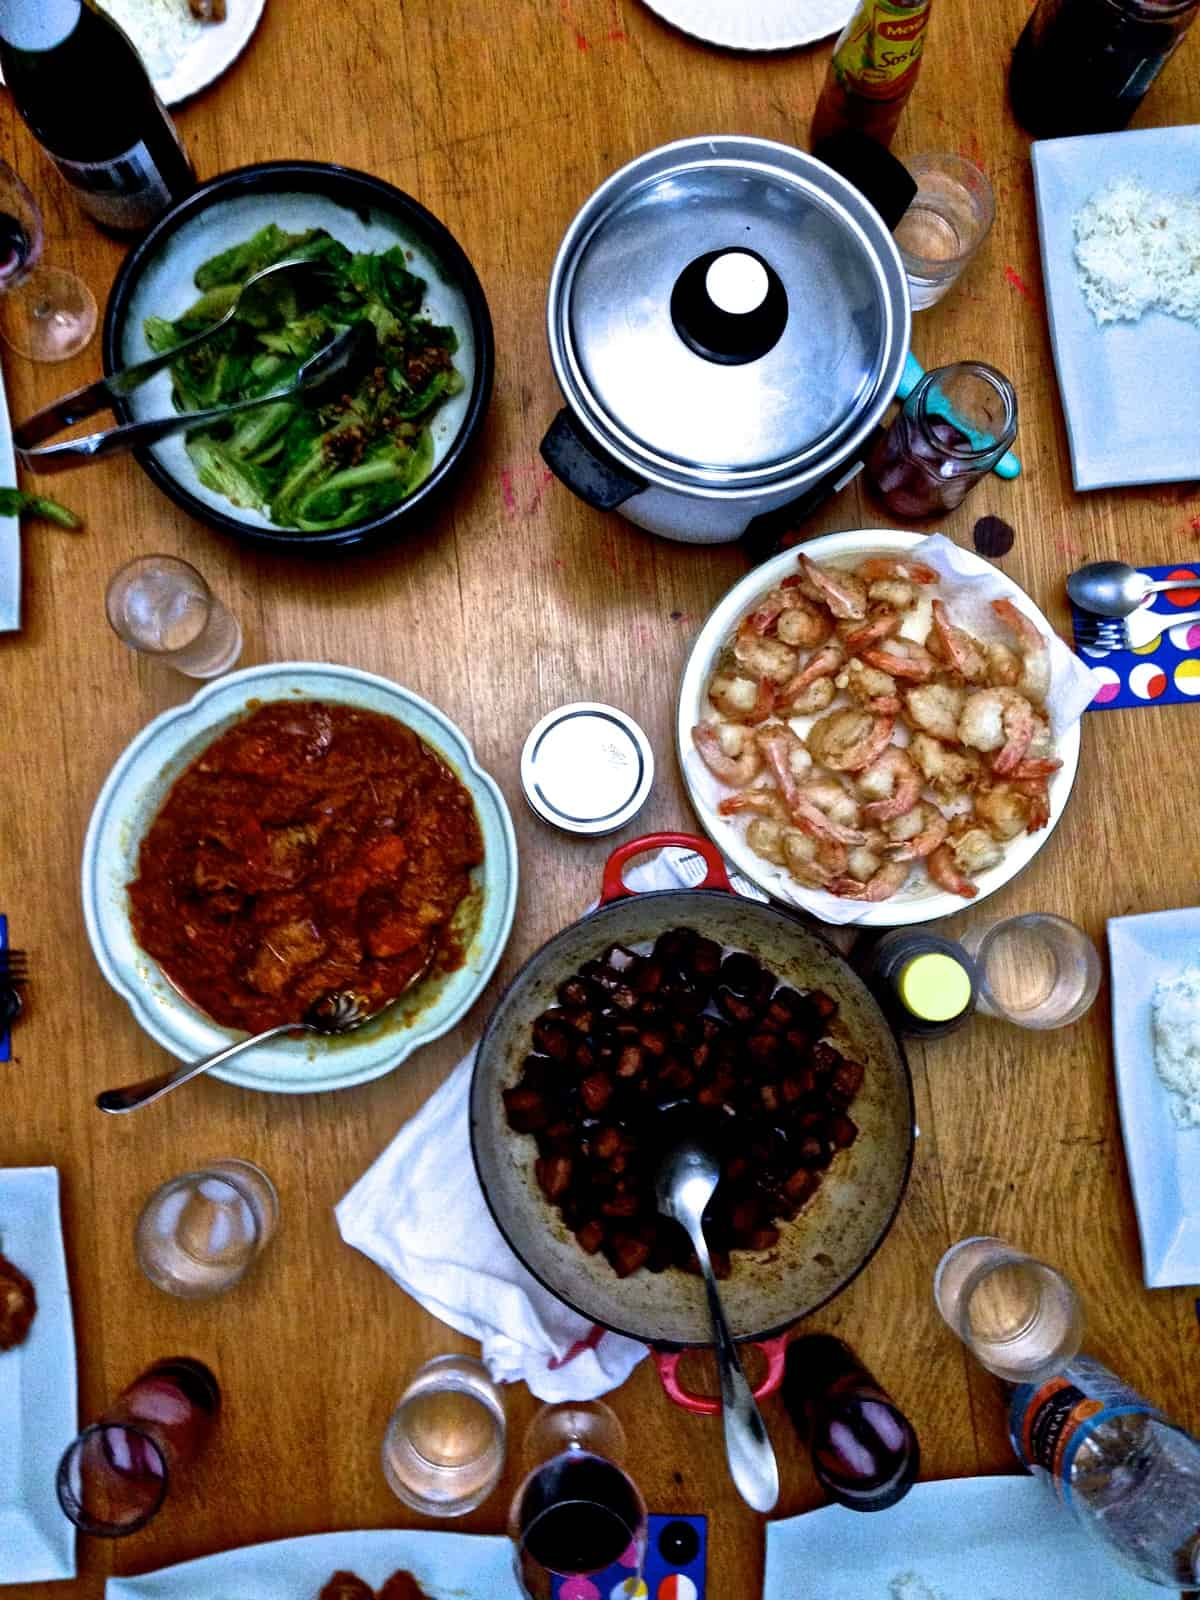 An overhead image of a wood table set for dinner with several different dishes on the table.